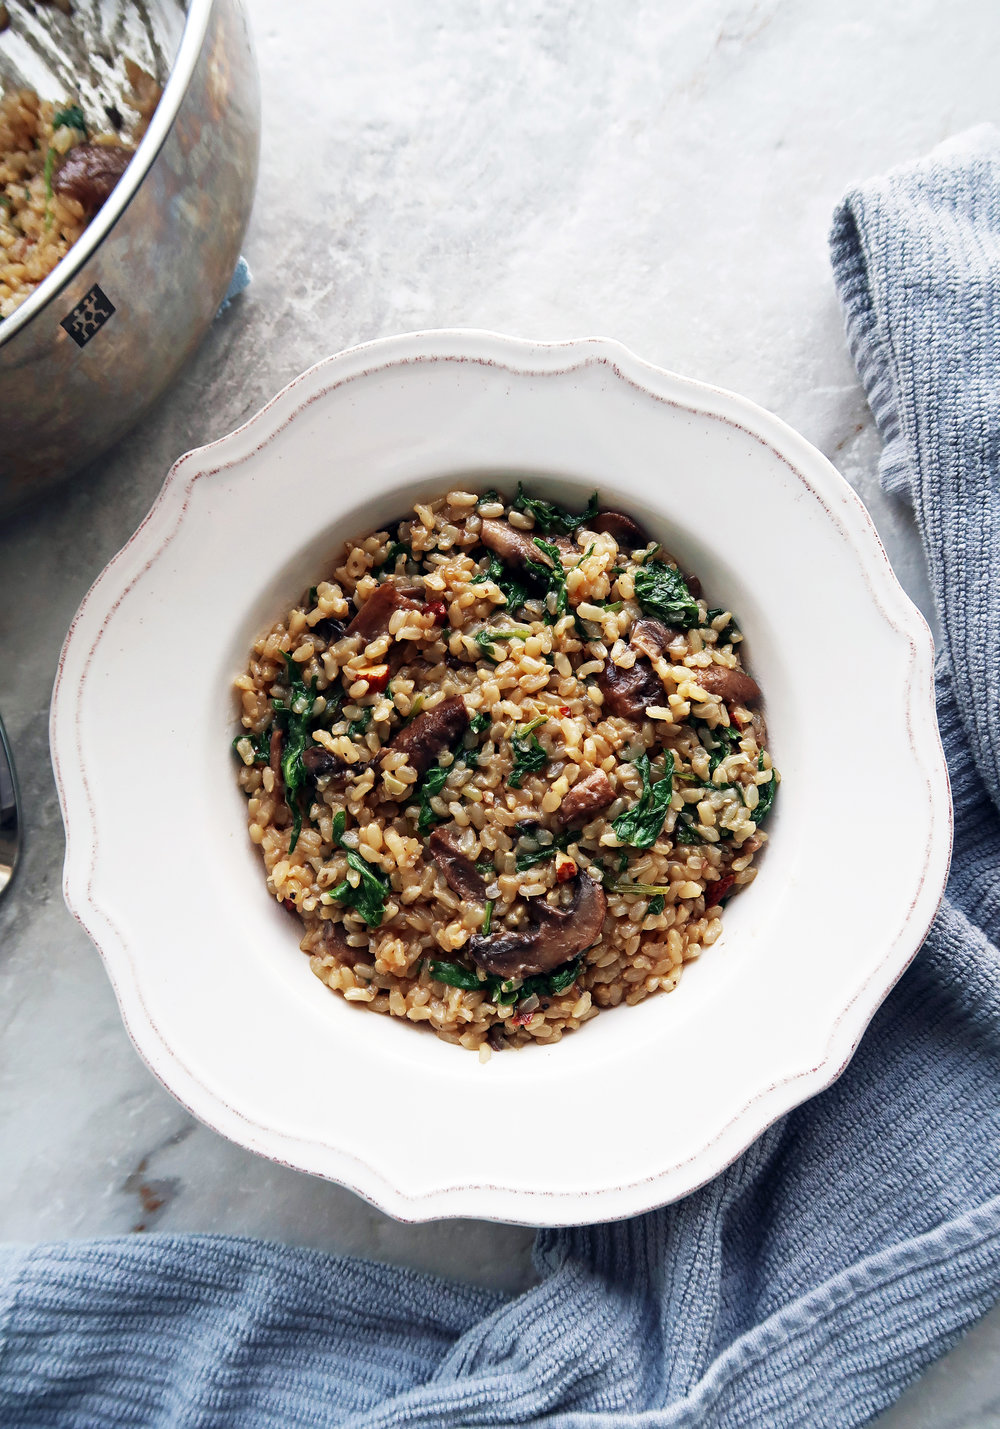 A bowl of Brown Rice Pilaf with Mushrooms, Kale, and Almonds